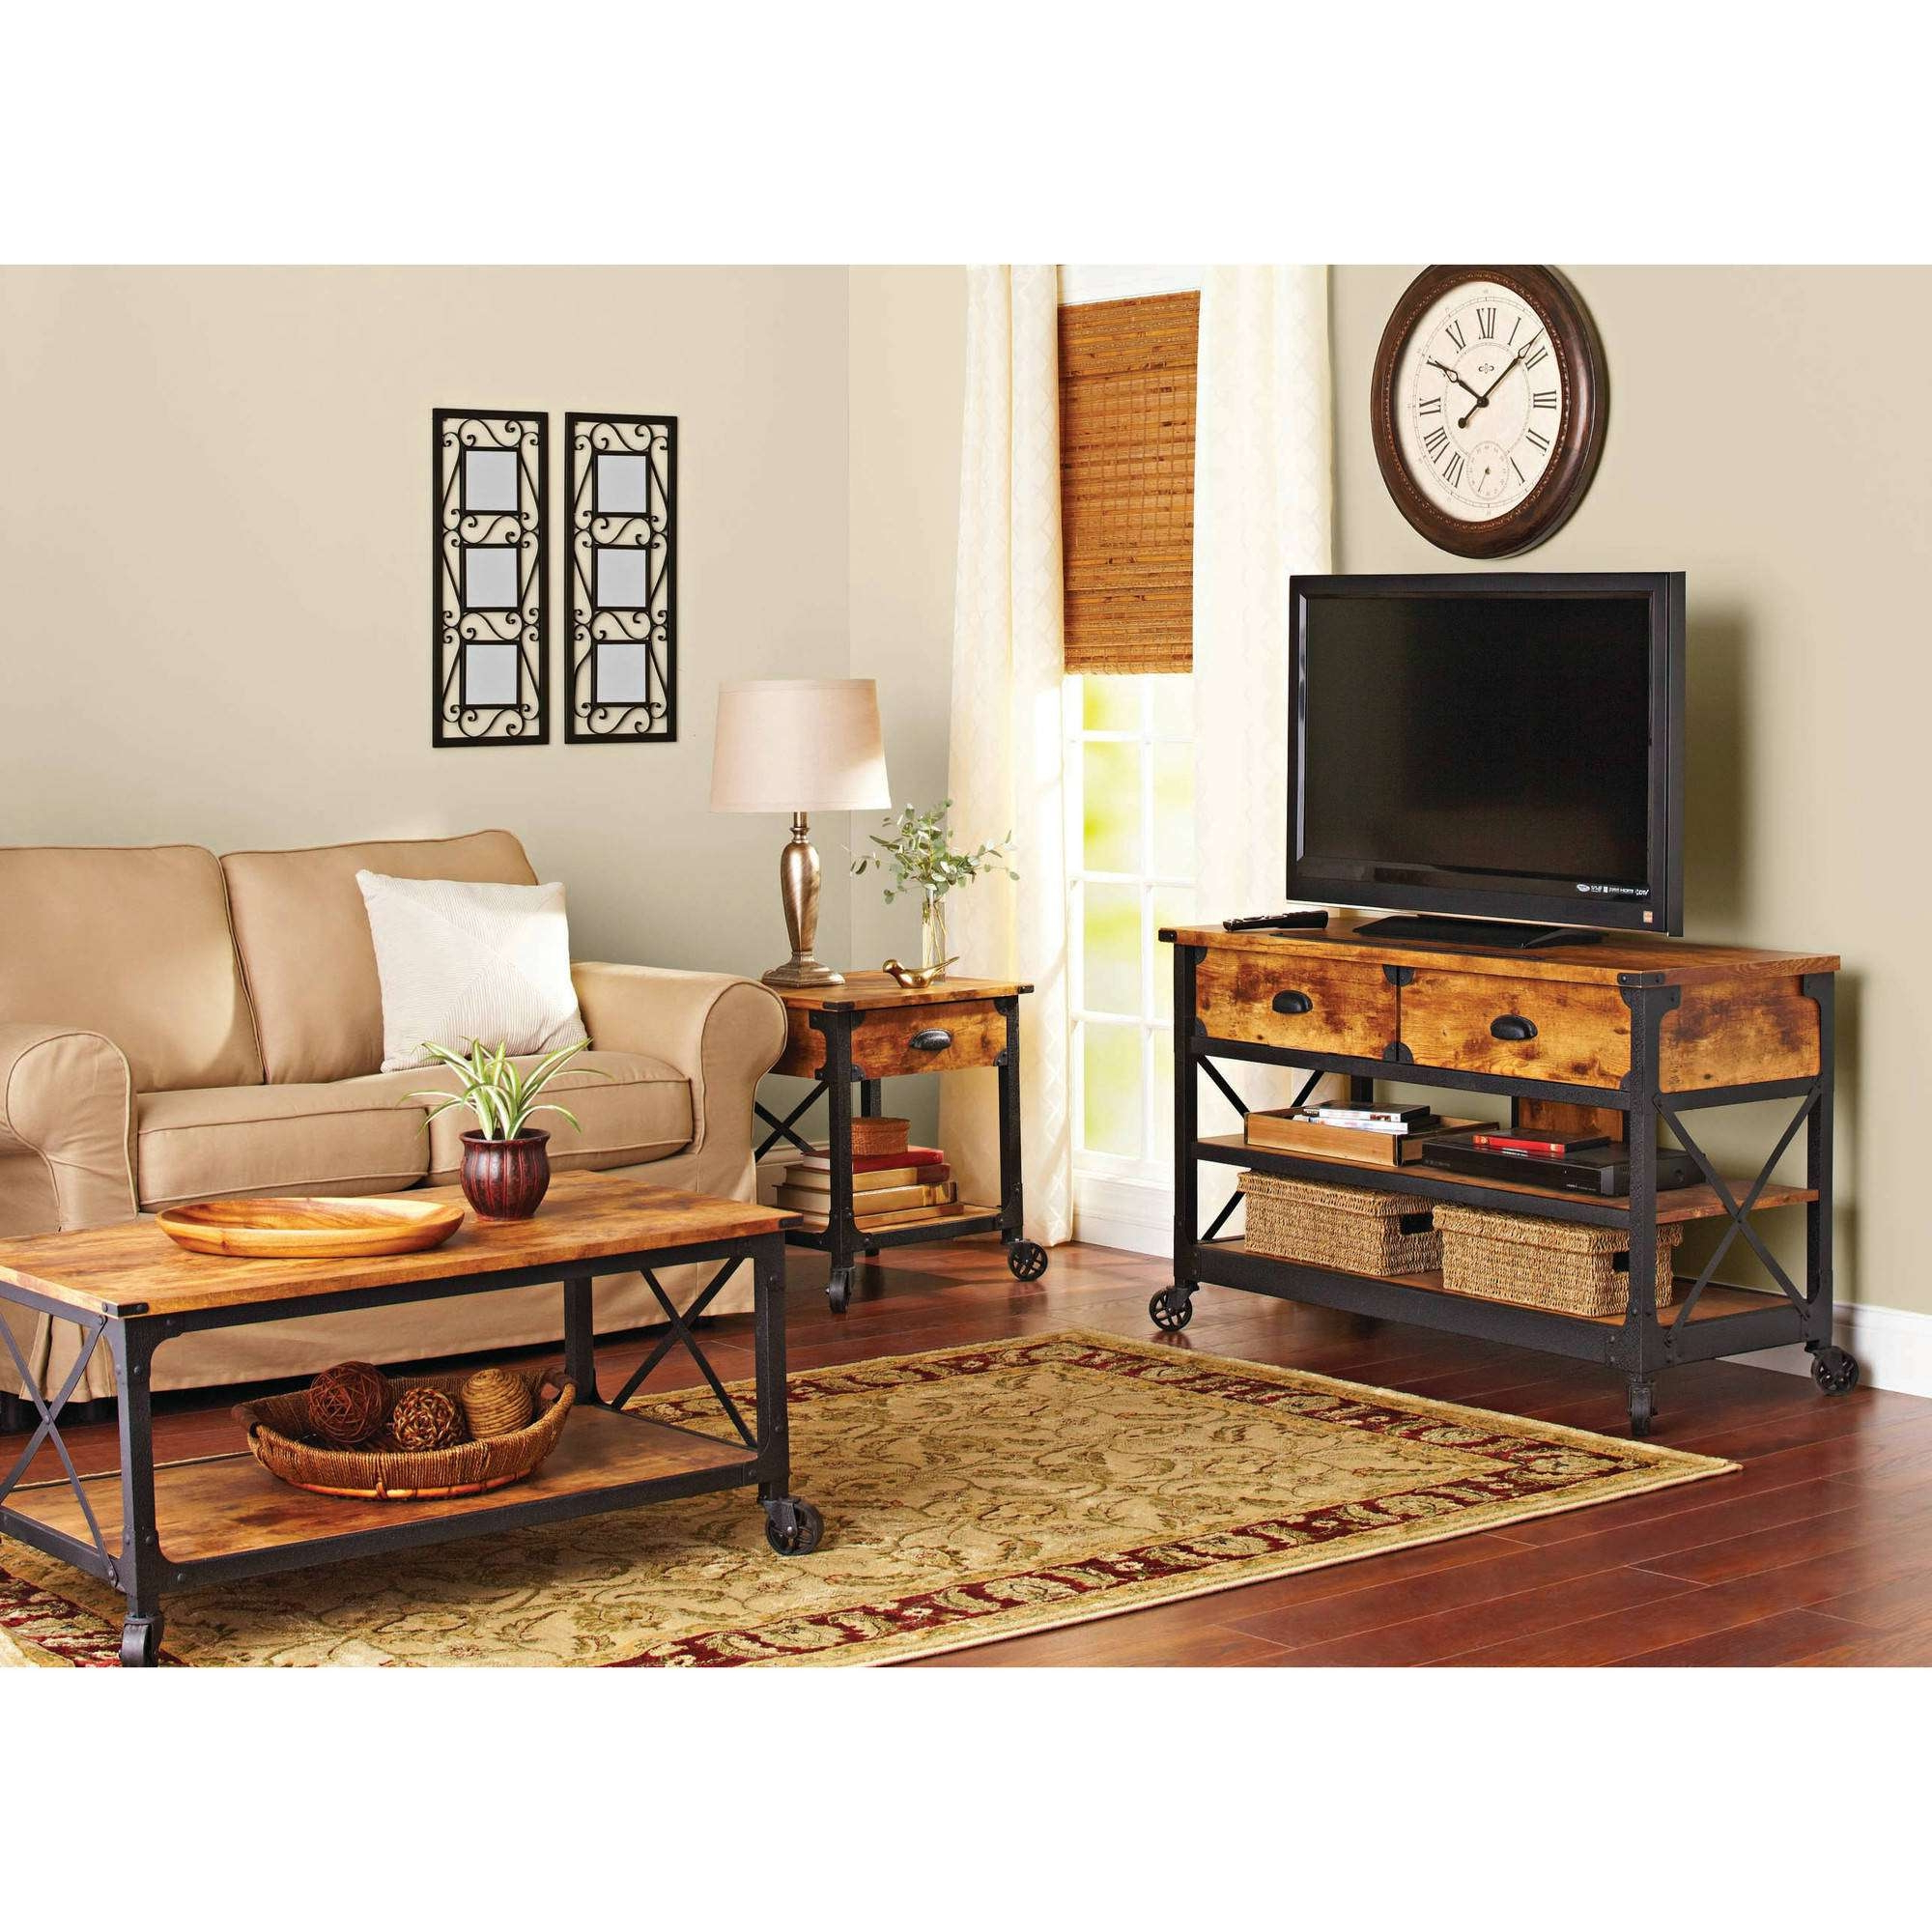 Featured Photo of Rustic Coffee Table And Tv Stand